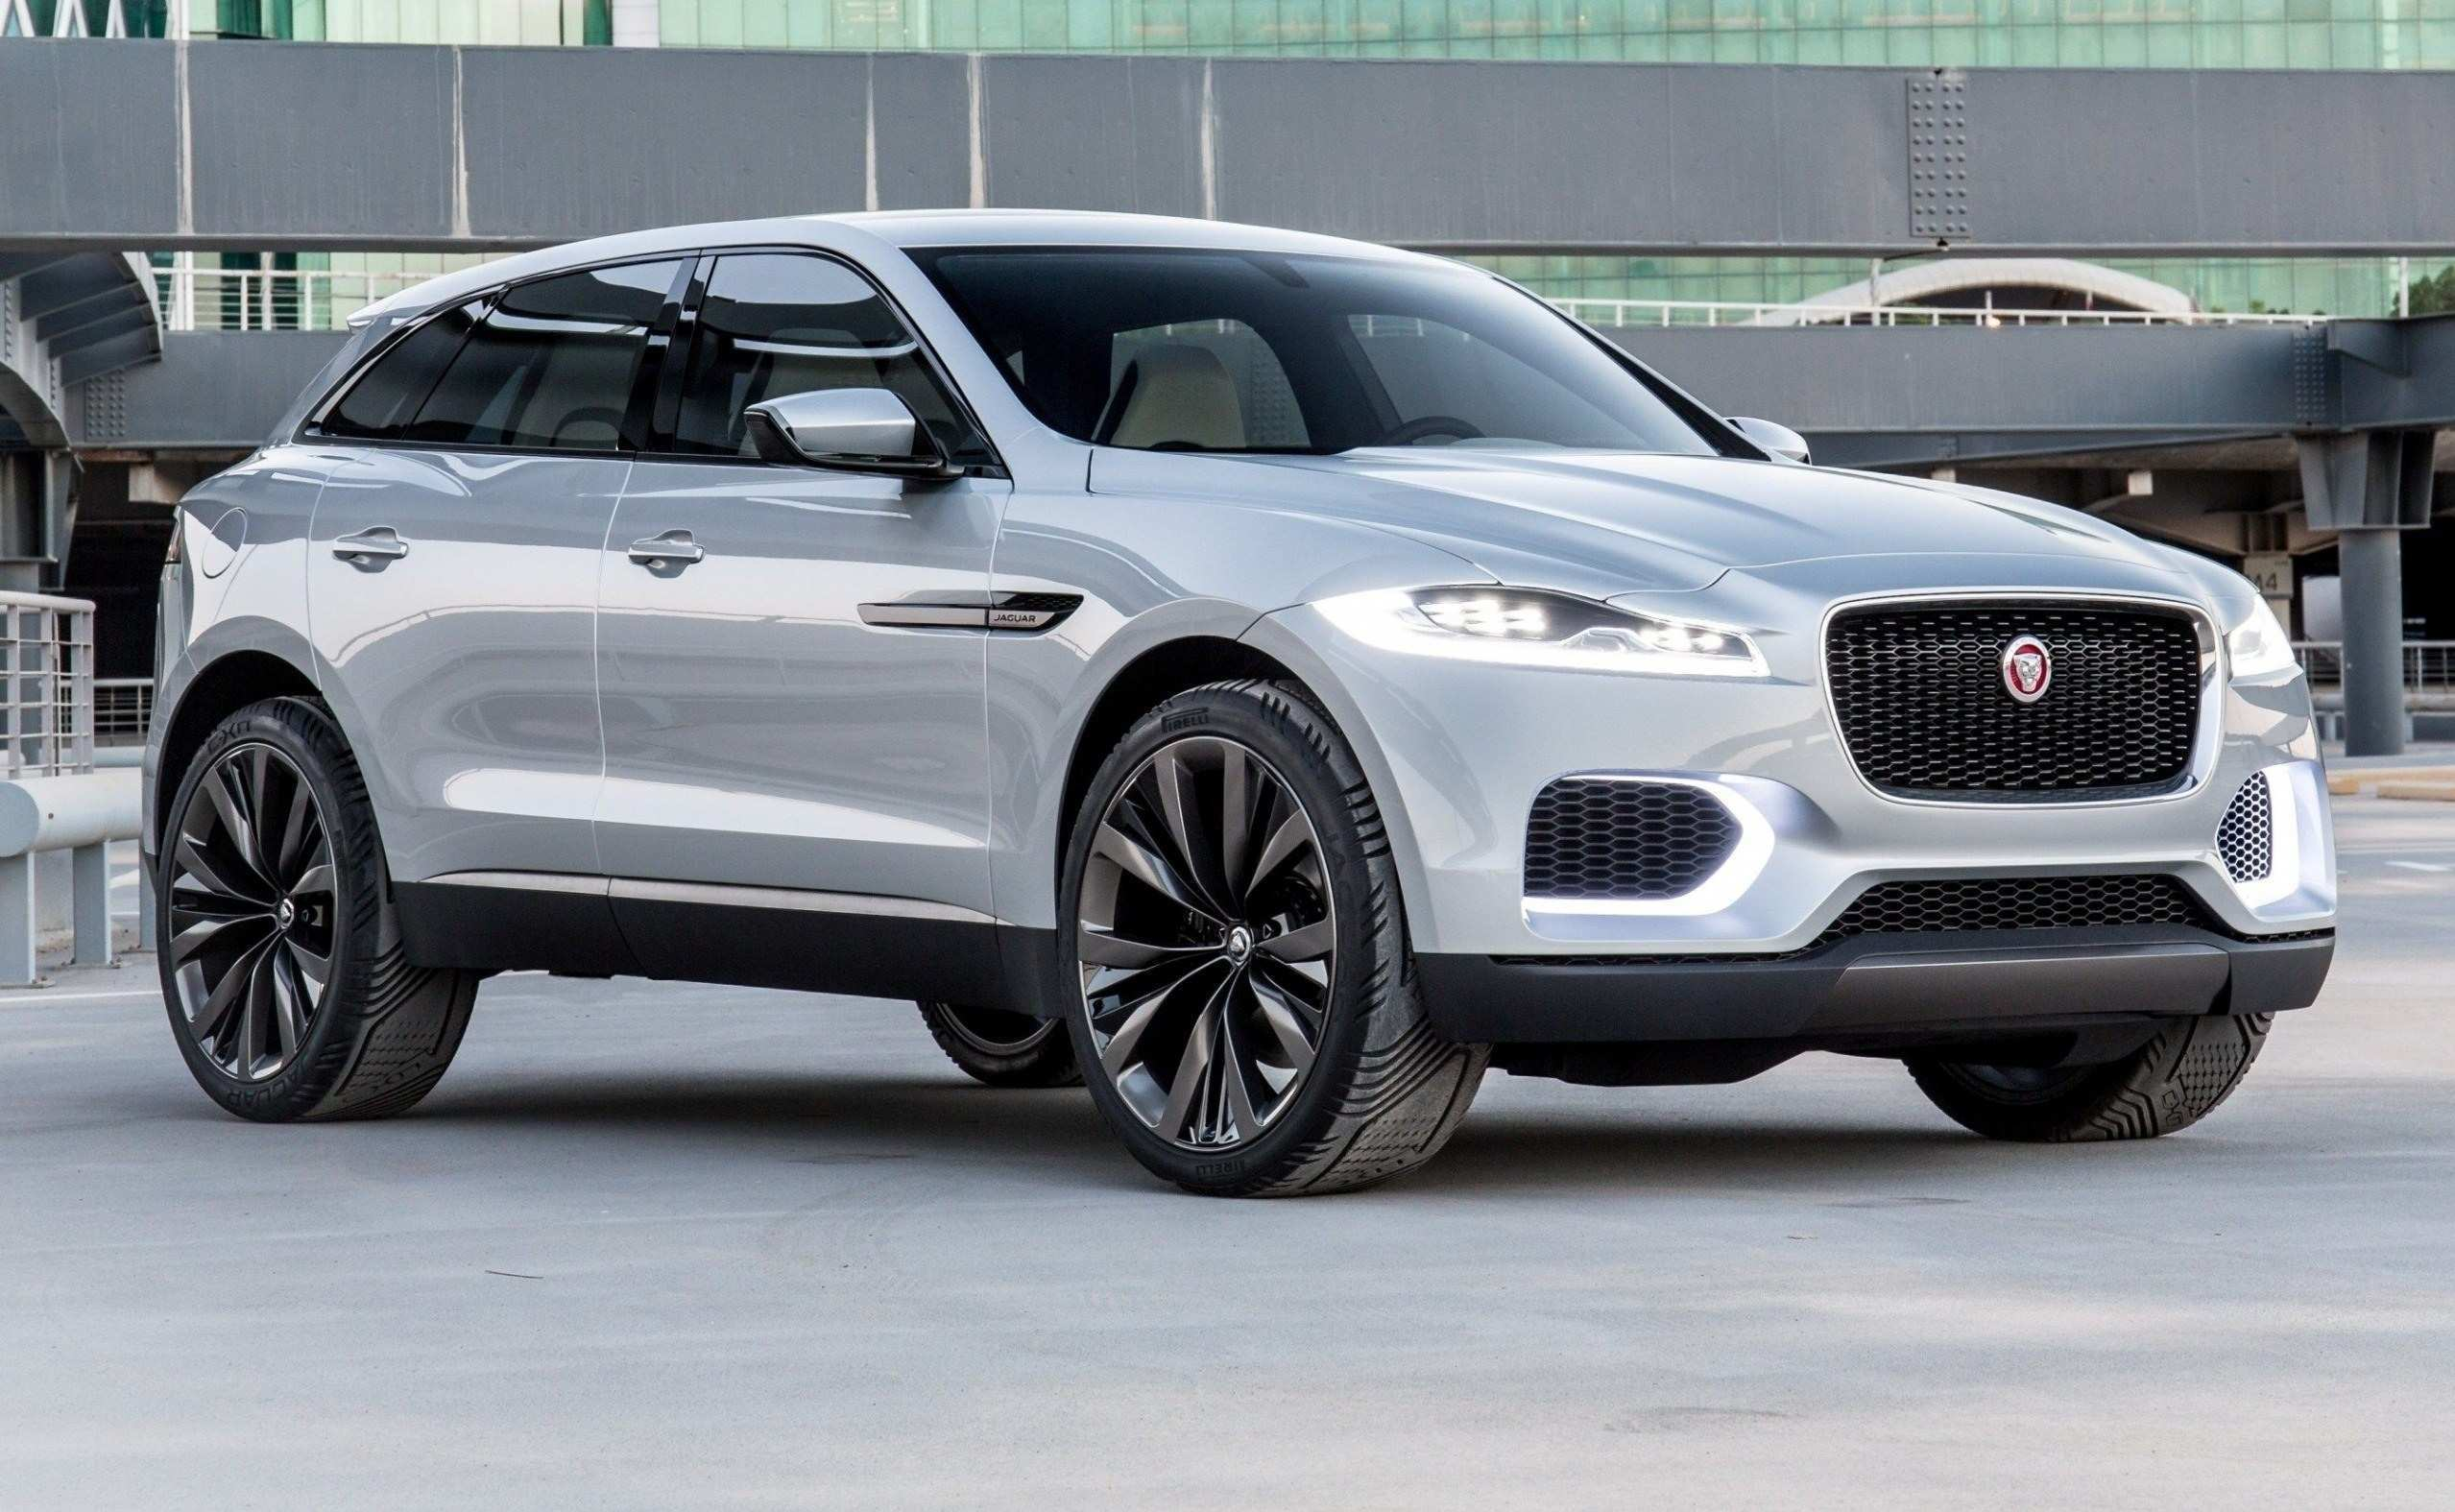 65 The Best 2019 Jaguar Xq Crossover Exterior And Interior